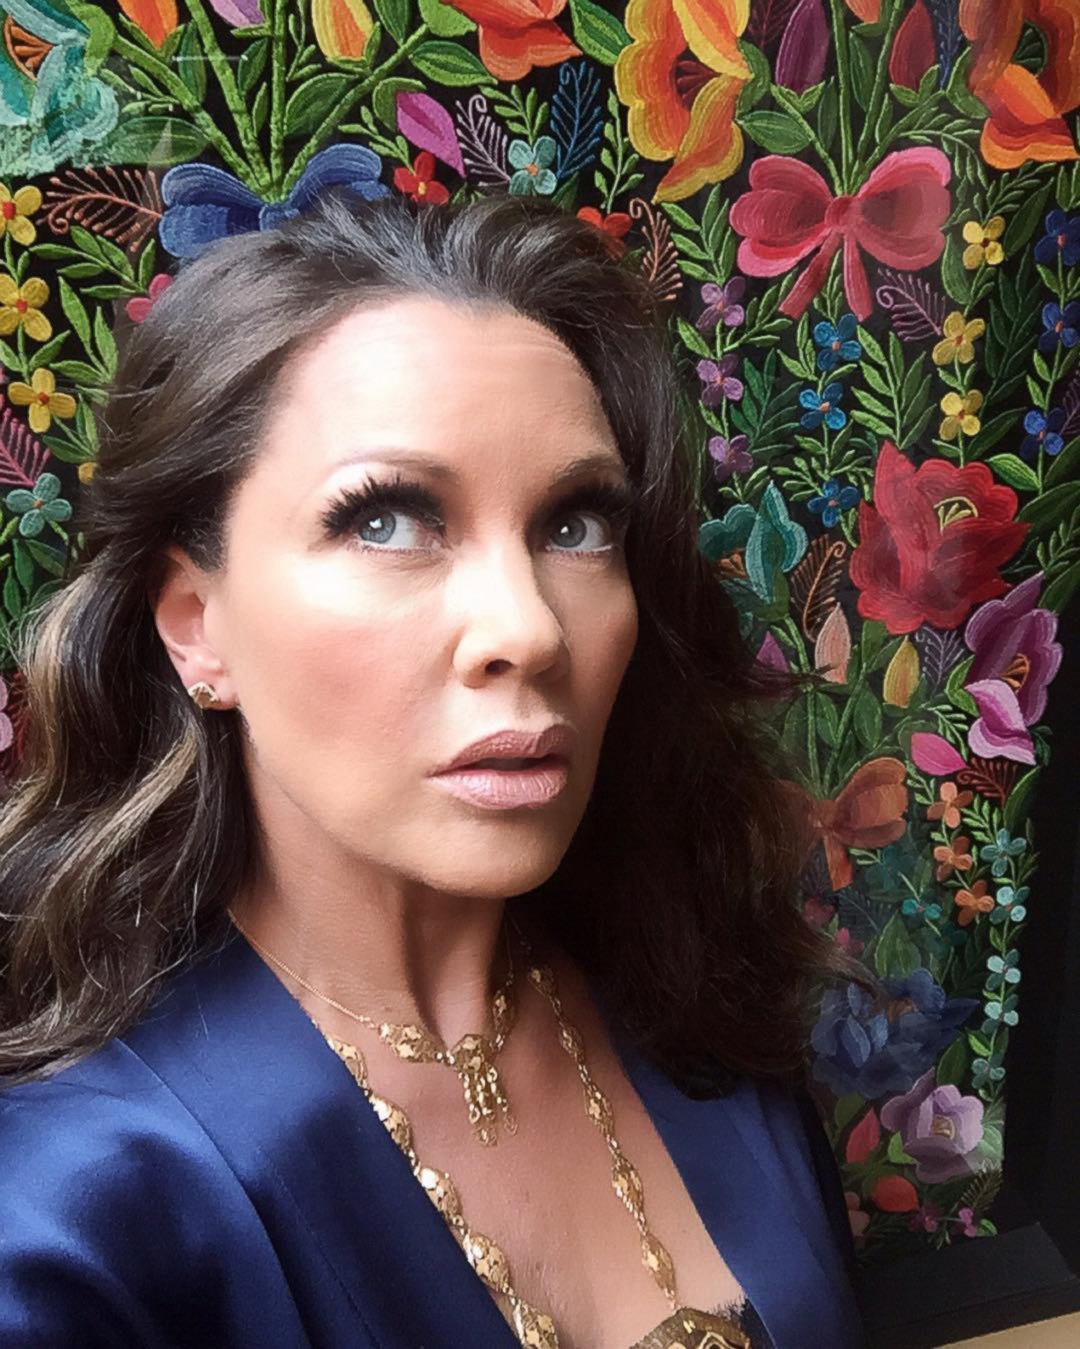 vanessa williams porn shots